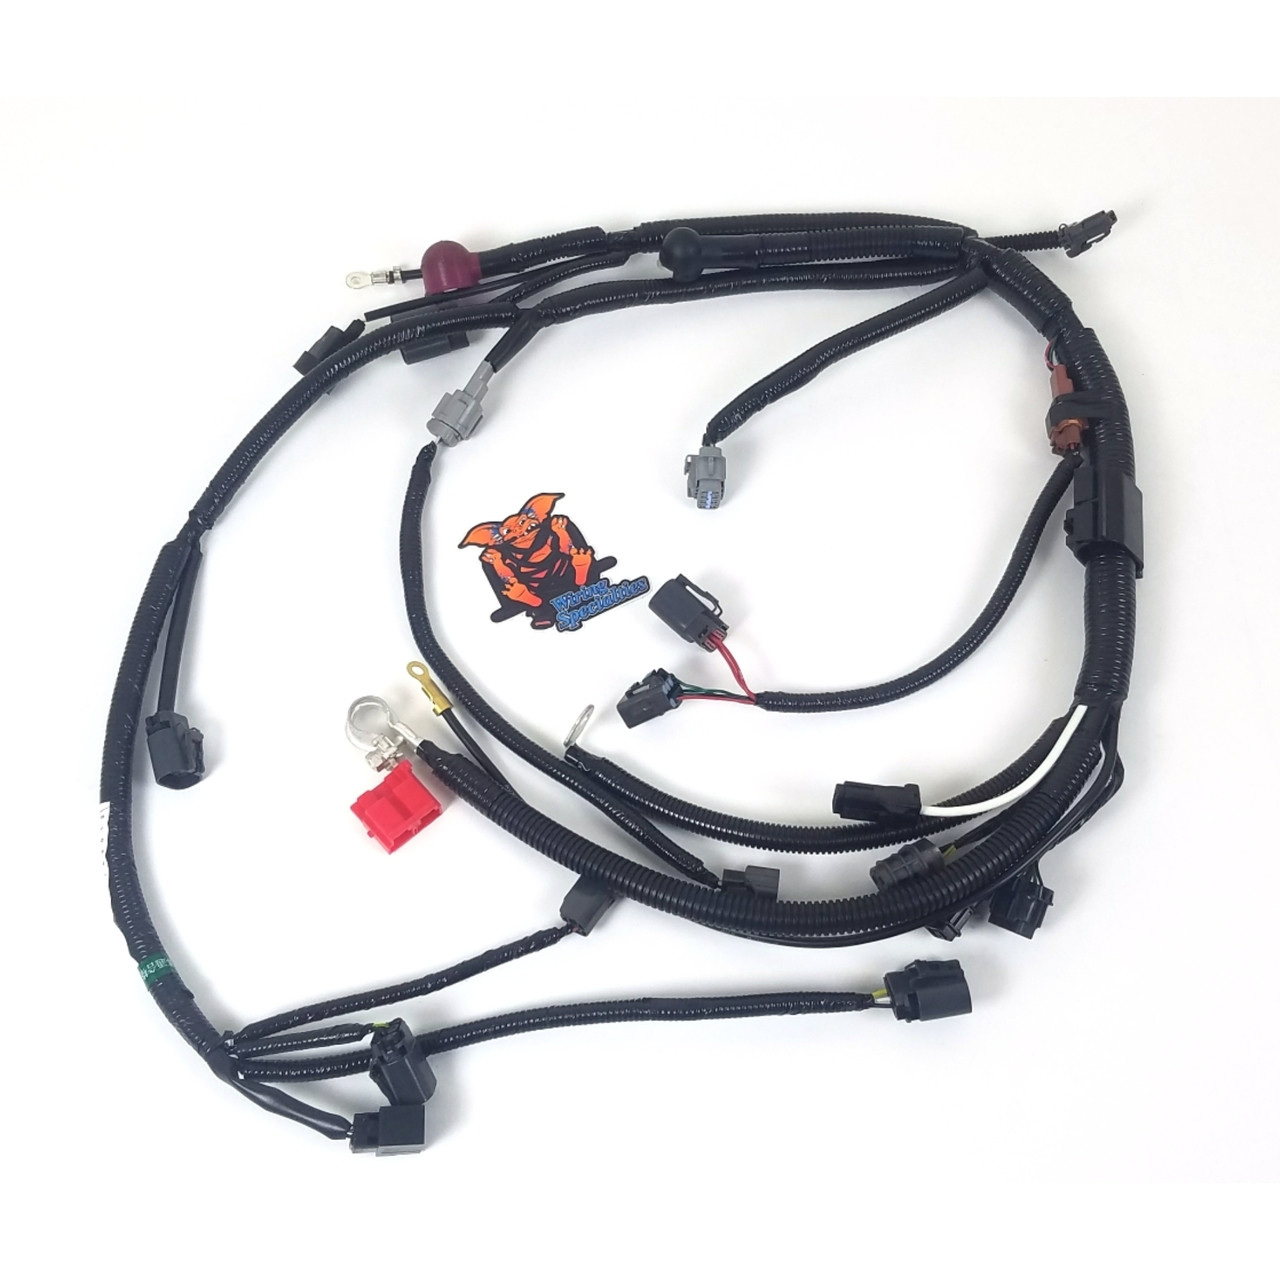 medium resolution of wiring specialties s14 ka24de lower harness for 240sx s14 enjuku racing parts llc